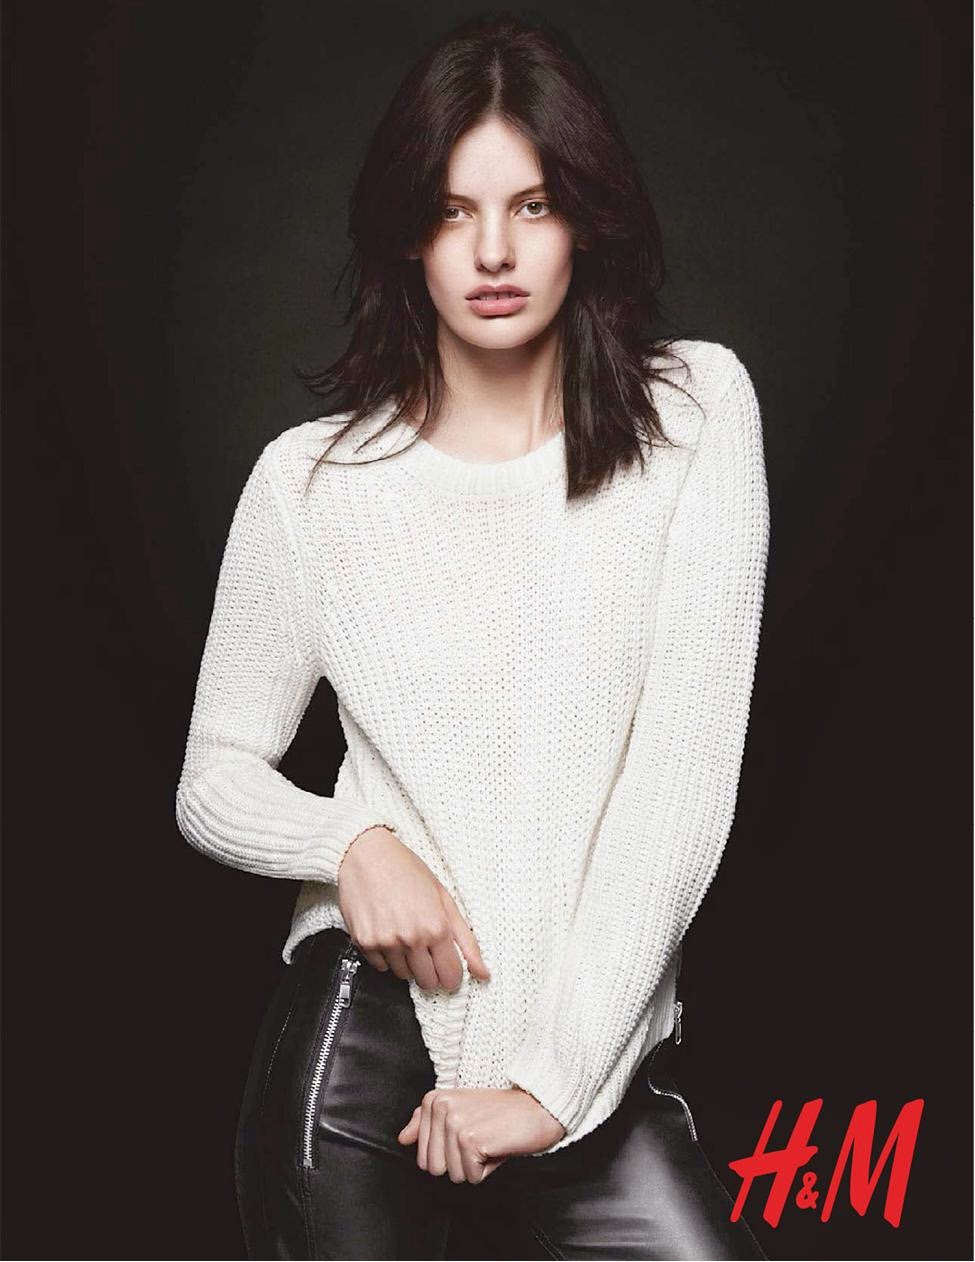 H&M Fall Winter 2014 Ad Campaign